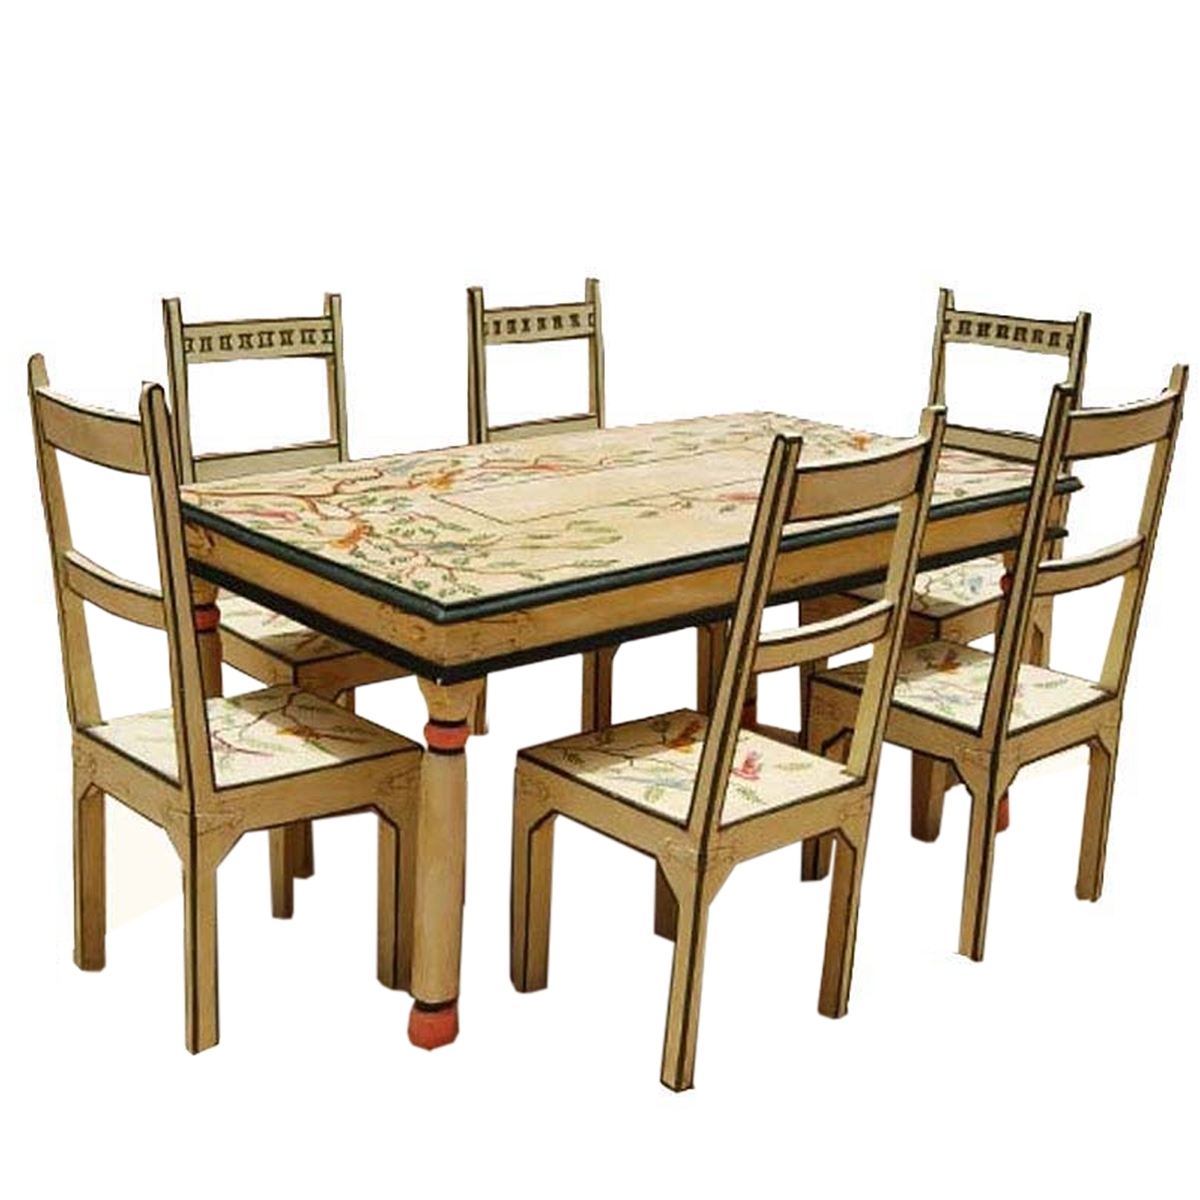 Painted Dining Tables Pertaining To Widely Used Birds Of Paradise Hand Painted 7Pc Country Dining Table And Chair Set (Gallery 18 of 25)